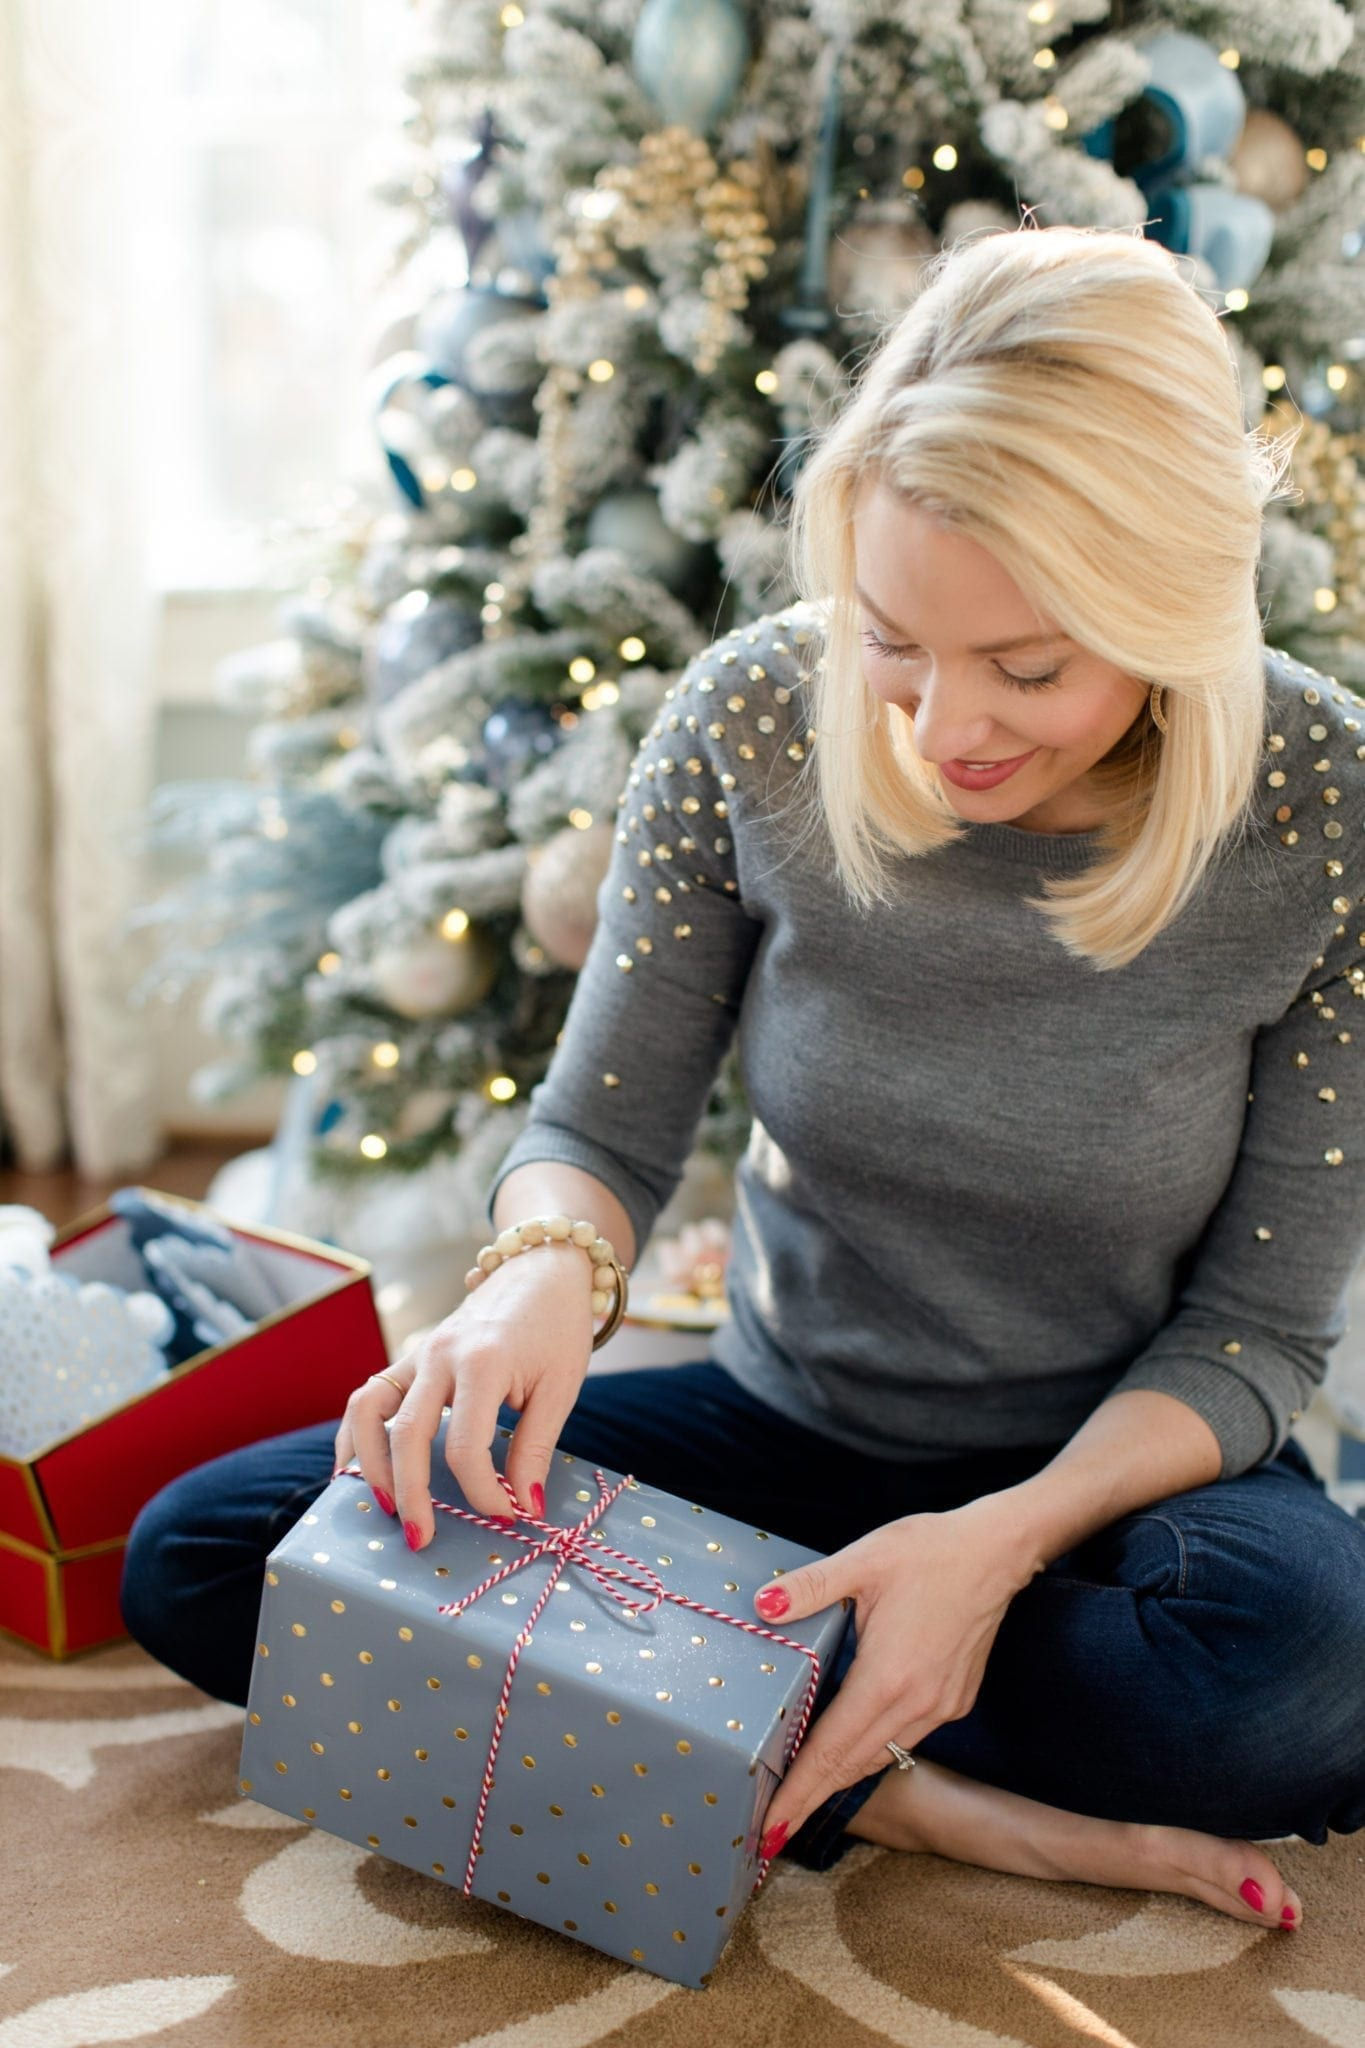 Lifestyle blogger Kelly Page from bluegraygal wrapping present with Target Sugar Paper wrapping paper.